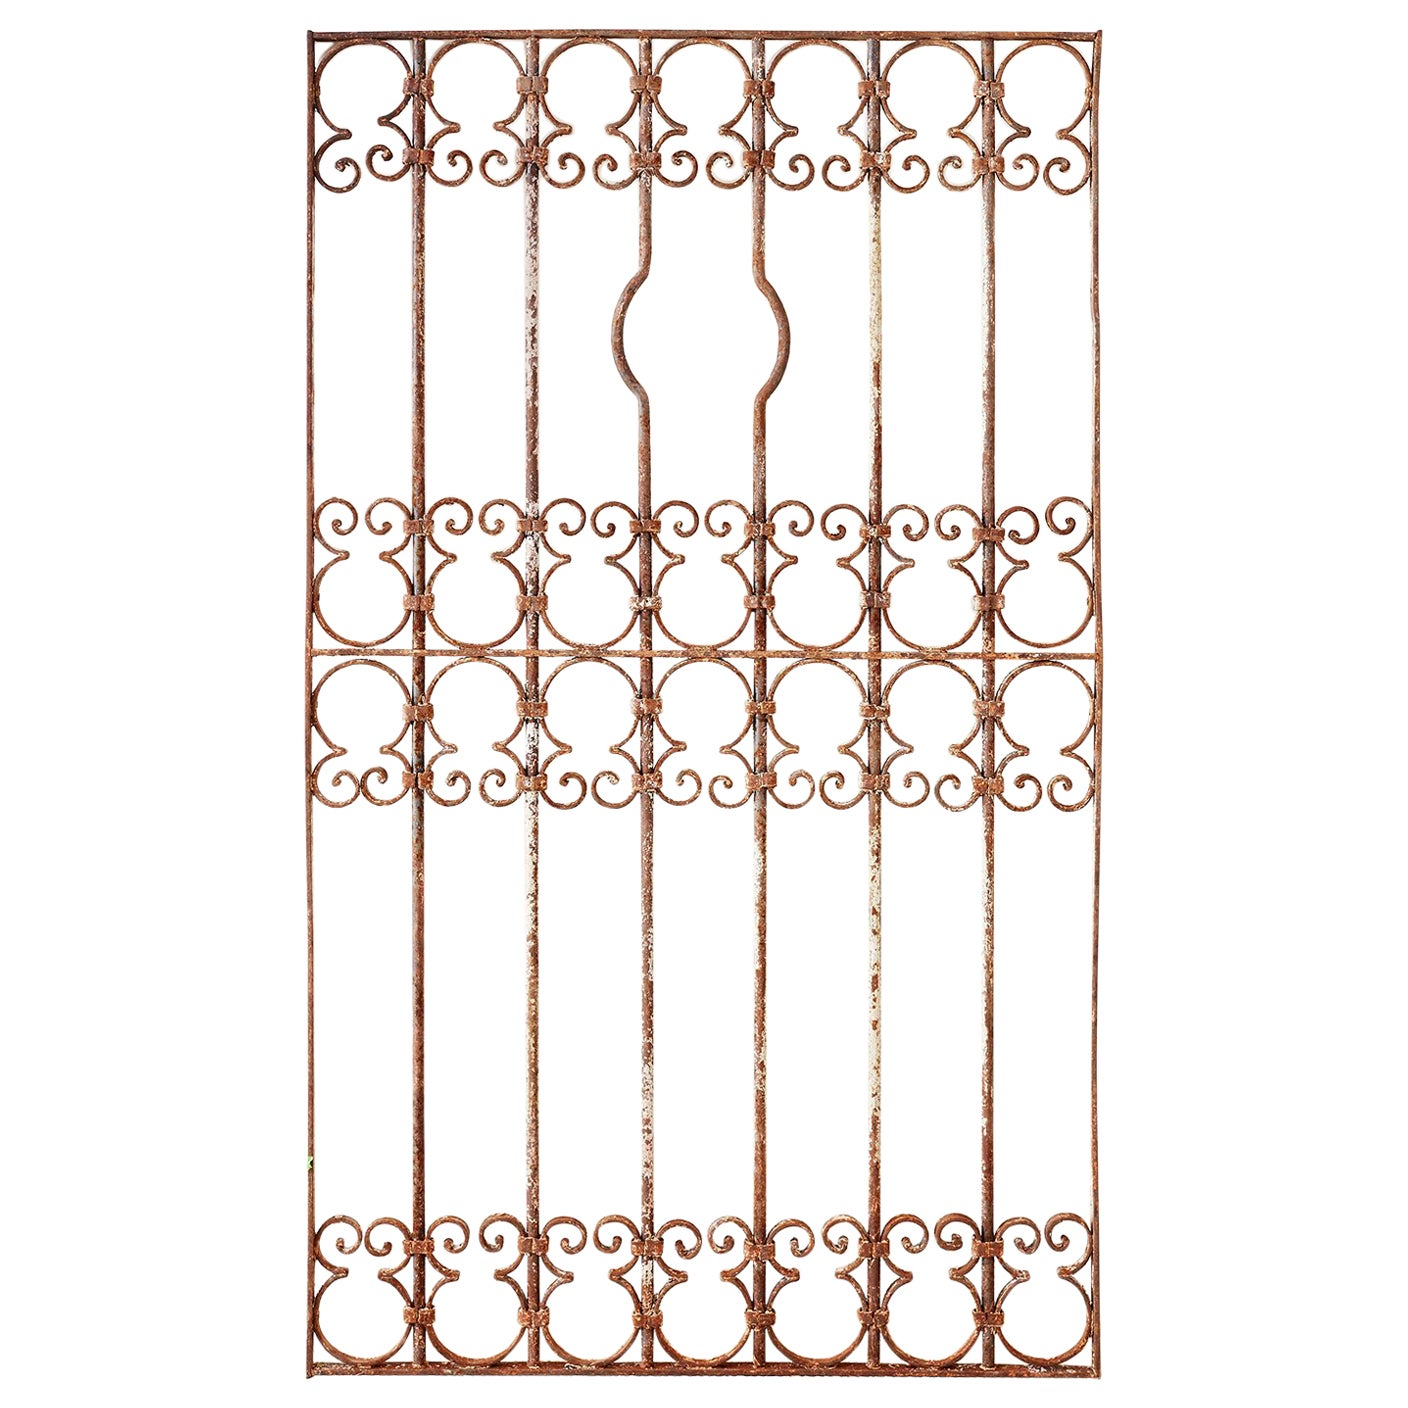 Spanish Wrought Iron Window Grill or Gate